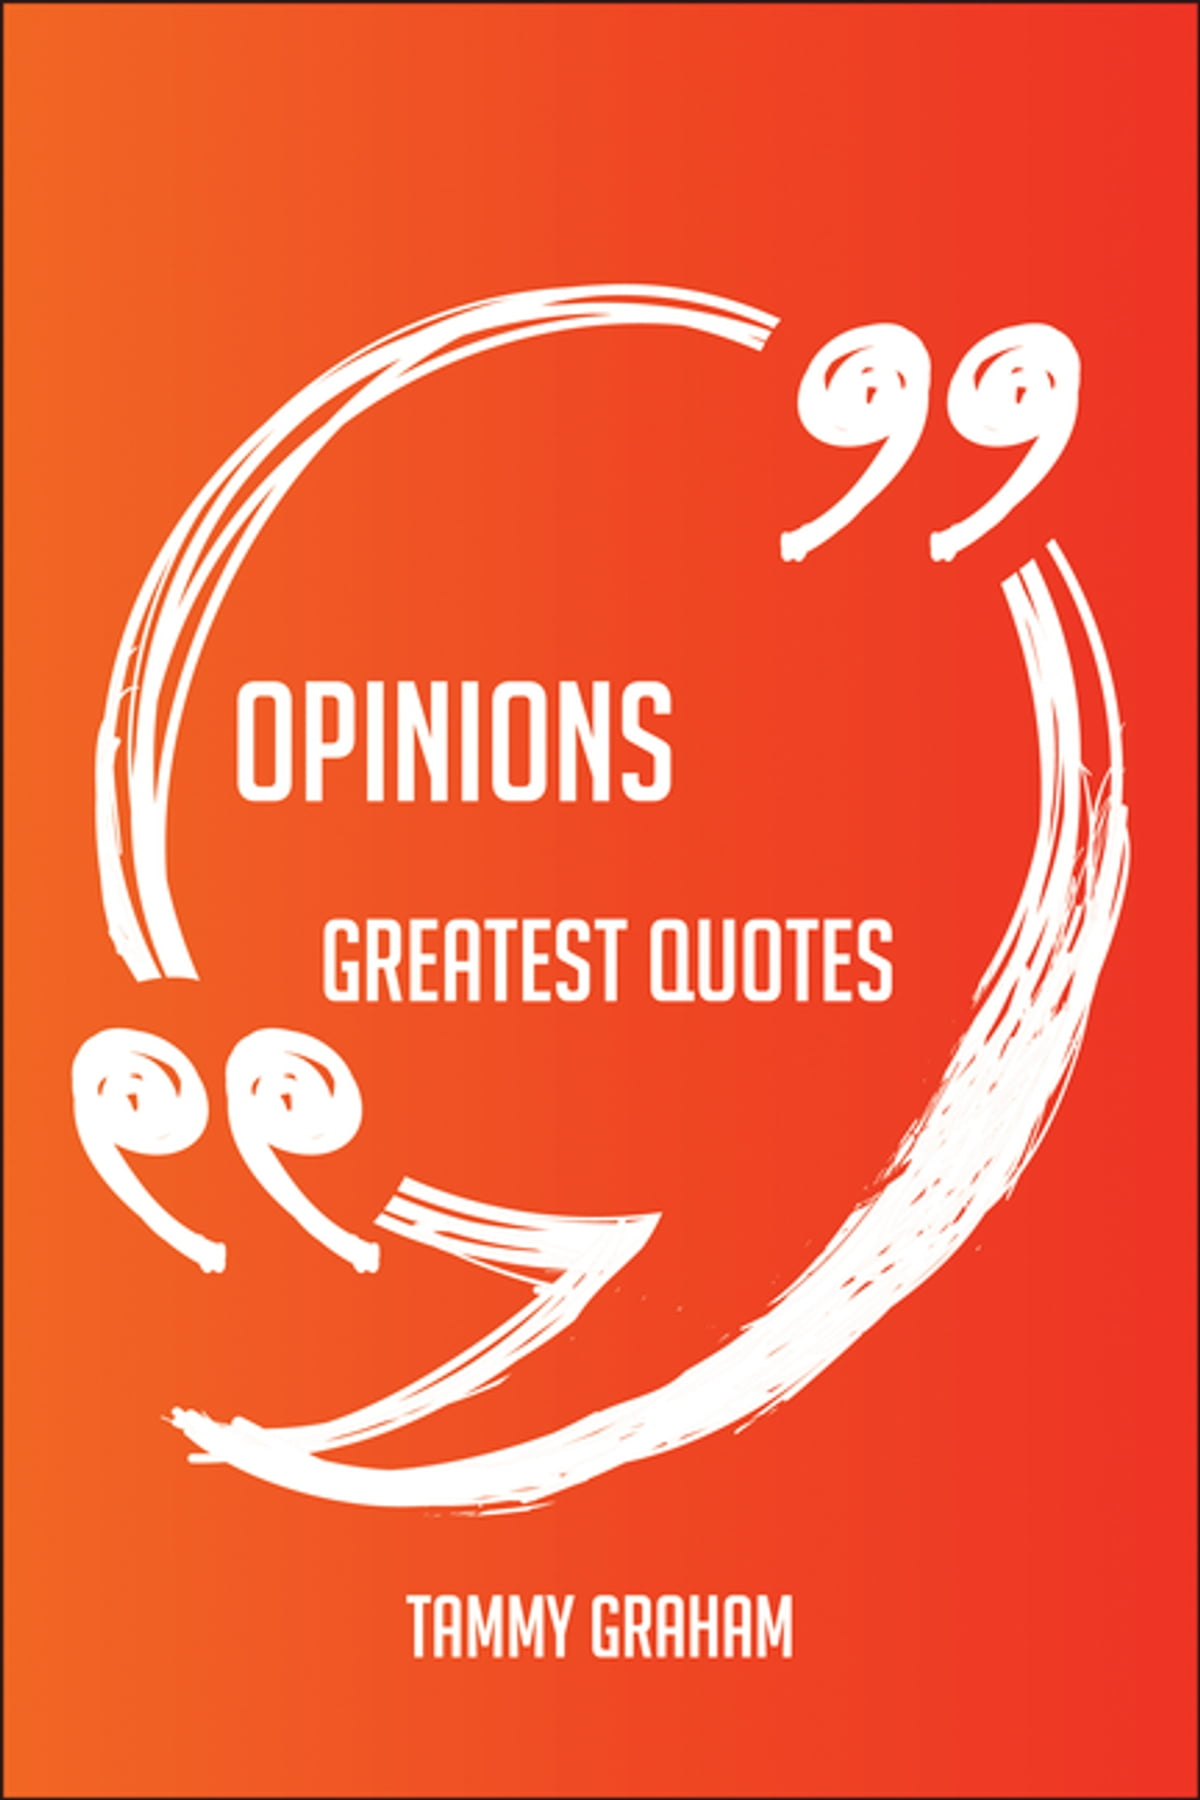 Opinions Greatest Quotes - Quick, Short, Medium Or Long Quotes. Find The  Perfect Opinions Quotations For All Occasions - Spicing Up Letters,  Speeches, ...